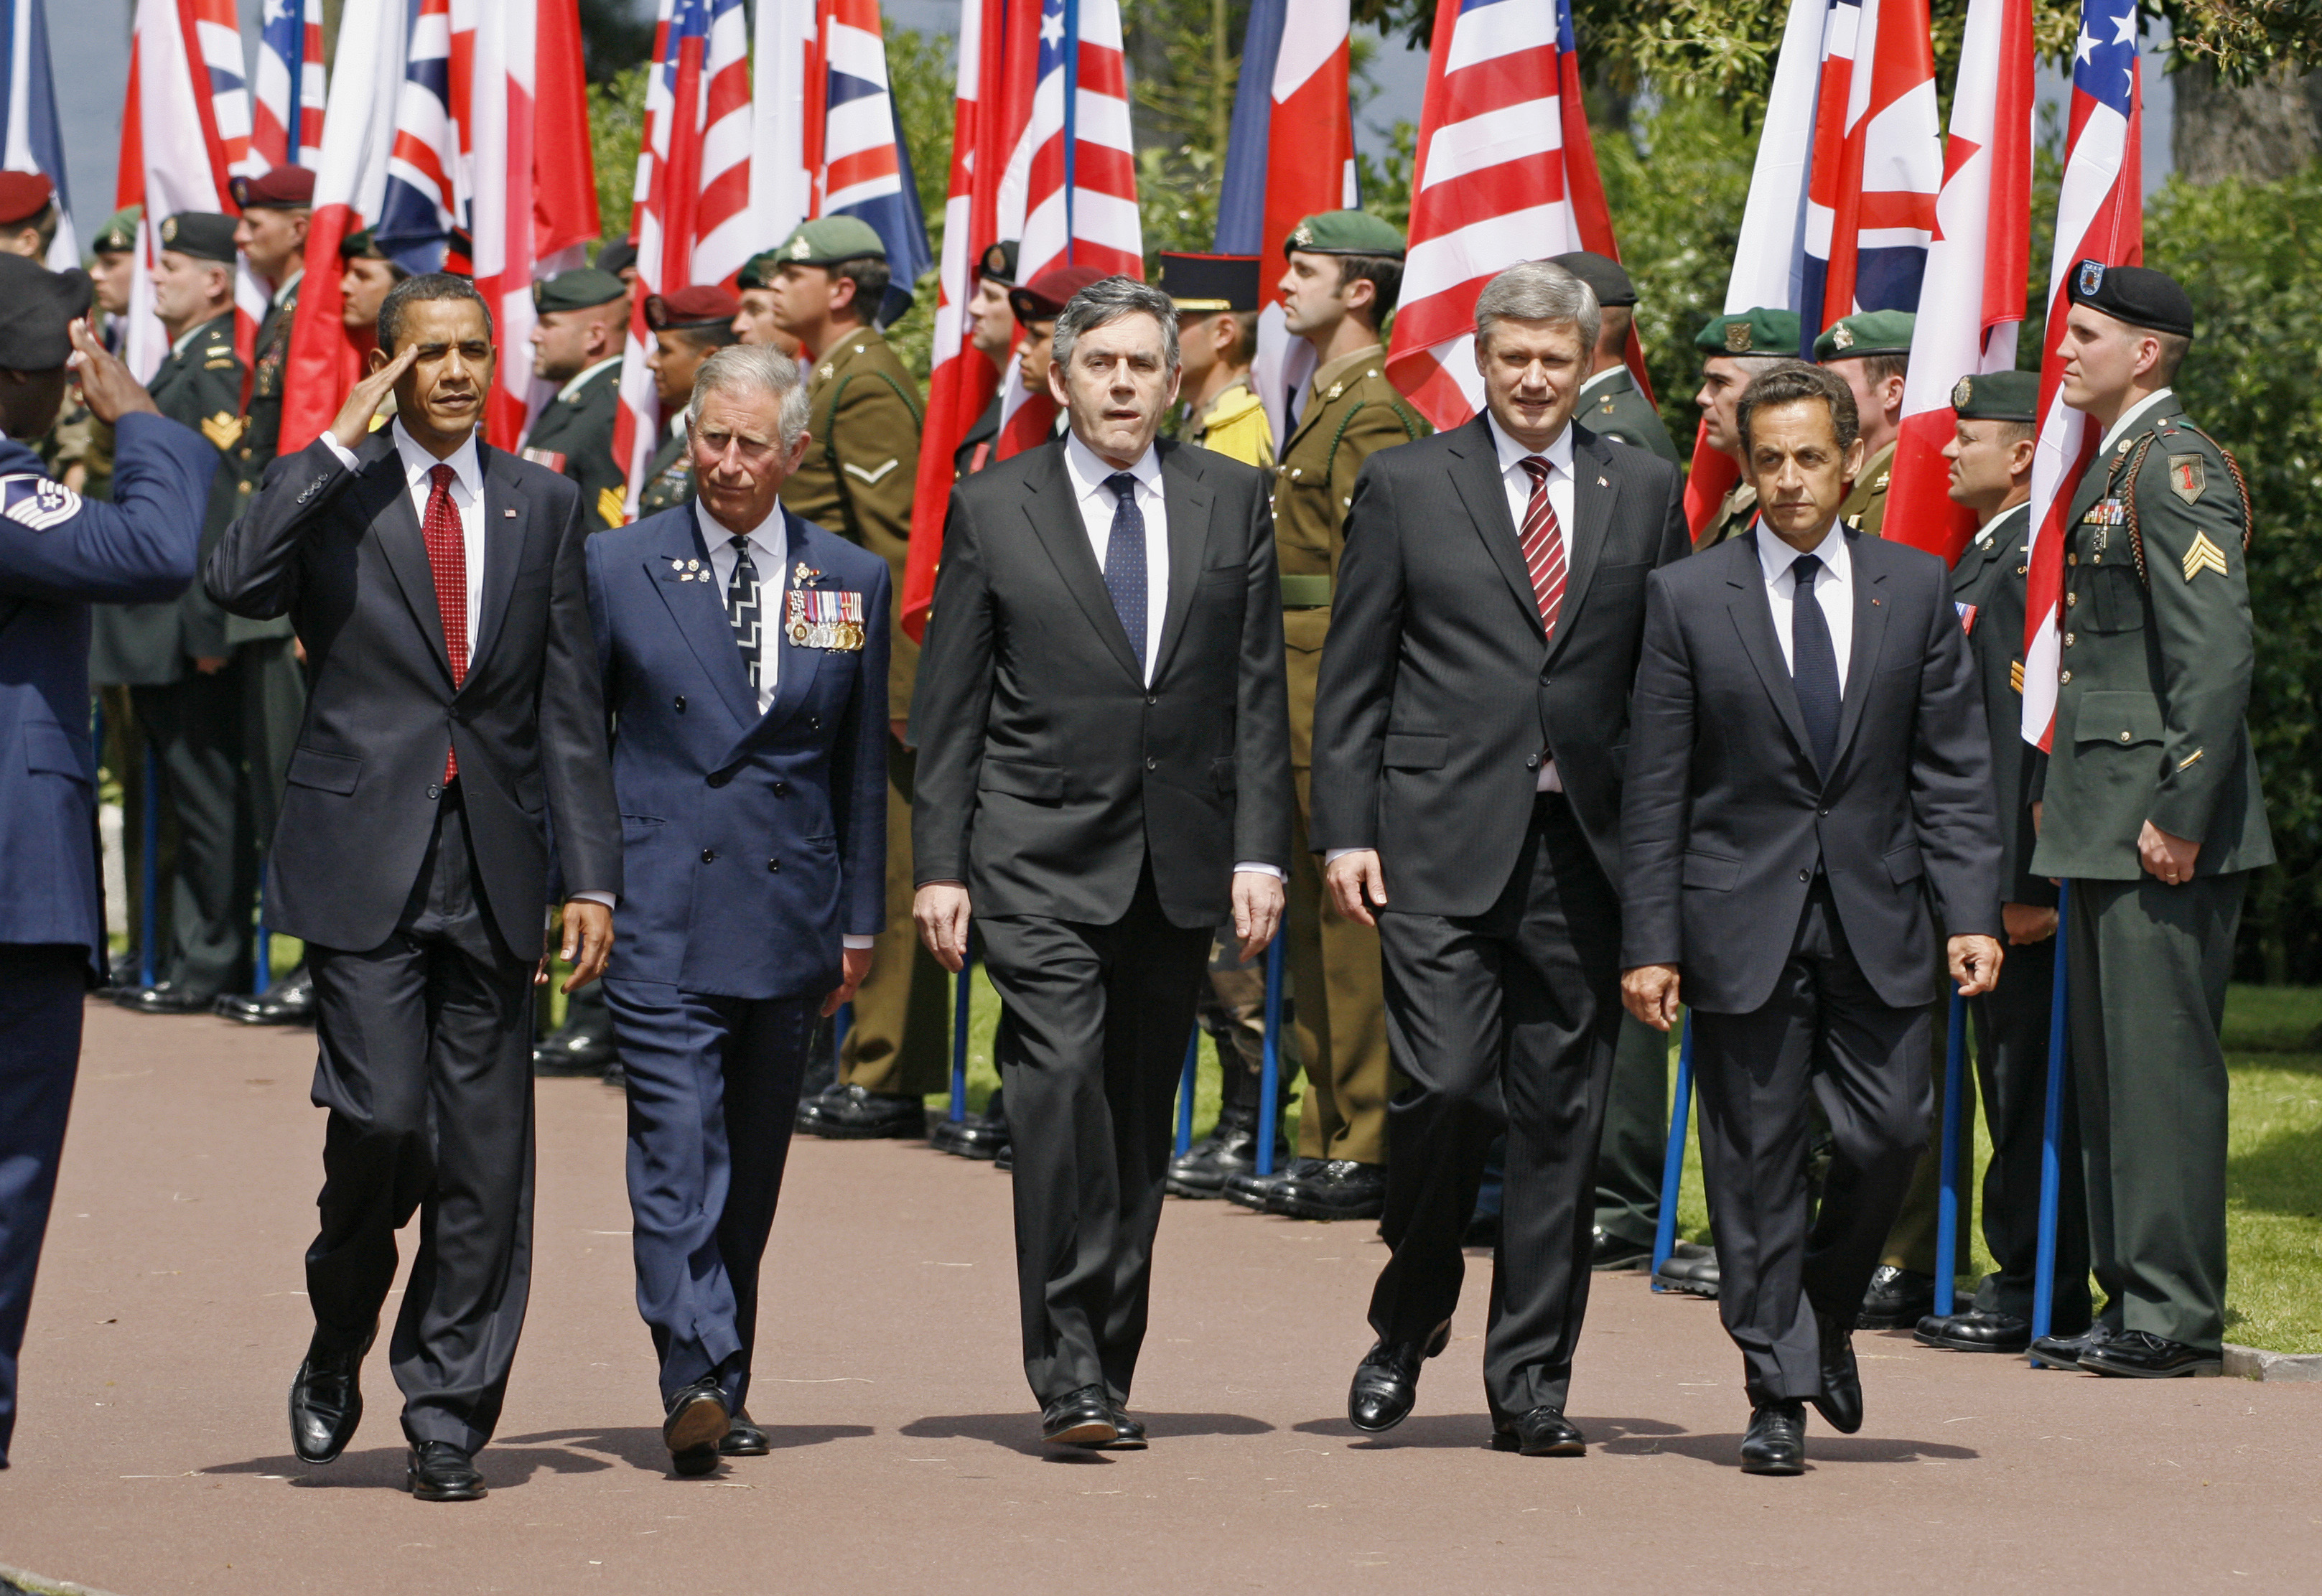 World leaders arrive at the U.S. war cemetery at Colleville-sur-Mer for a ceremony marking the 65th anniversary of the Allied forces D-Day landings at Normandy June 6, 2009. From L-R: U.S. President Barack Obama, Britain's Prince Charles, Britain's Prime Minister Gordon Brown, Canada's Prime Minister Stephen Harper and France's President Nicolas Sarkozy. REUTERS/Mal Langsdon